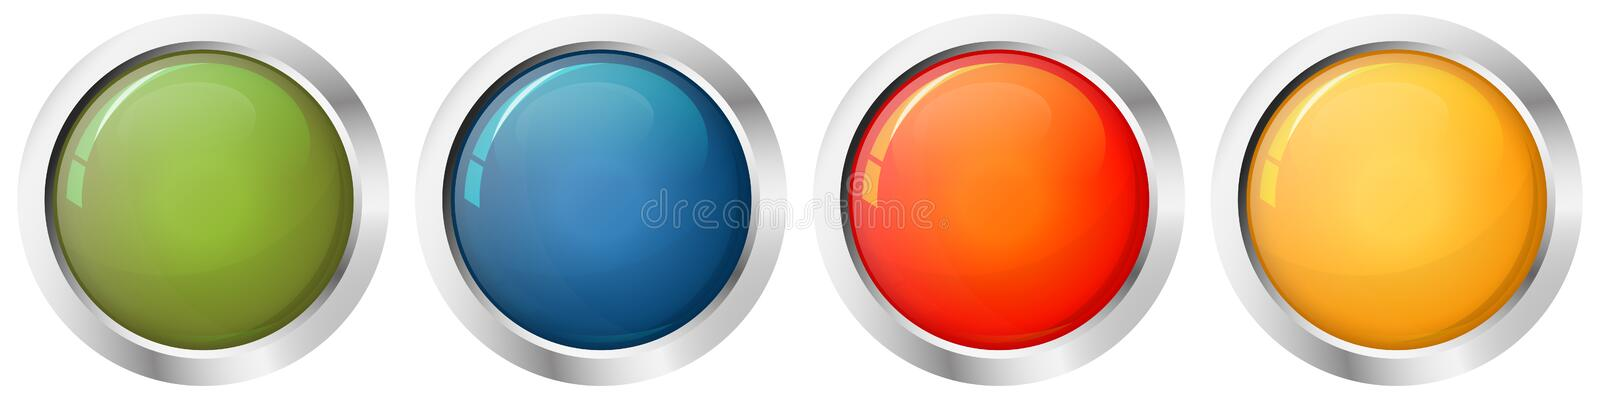 Button template four colors royalty free illustration